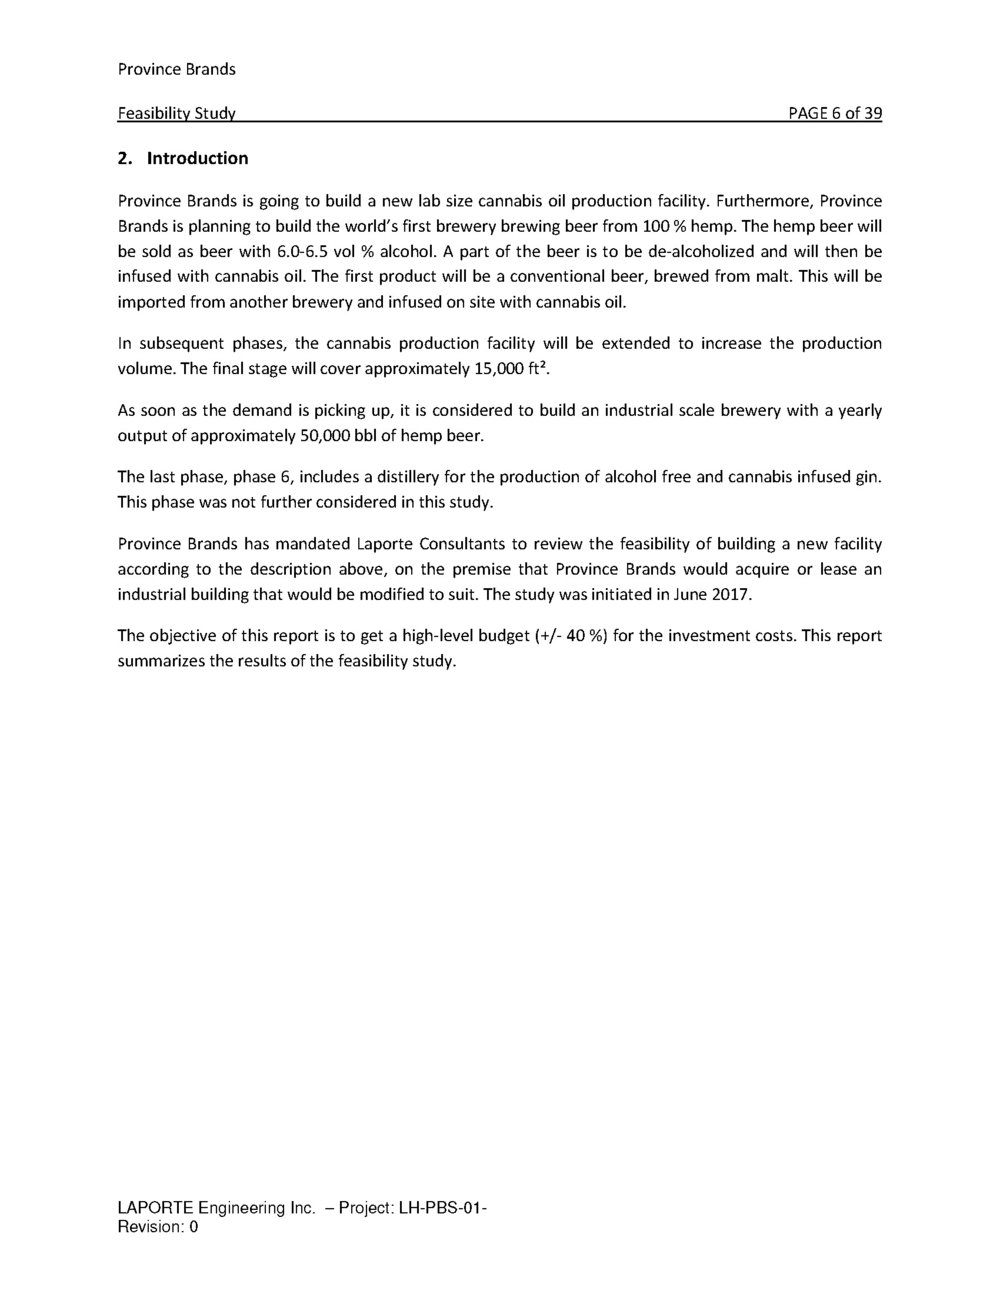 LH-PBS-01_Feasibility Study Report_01_Page_06.jpg